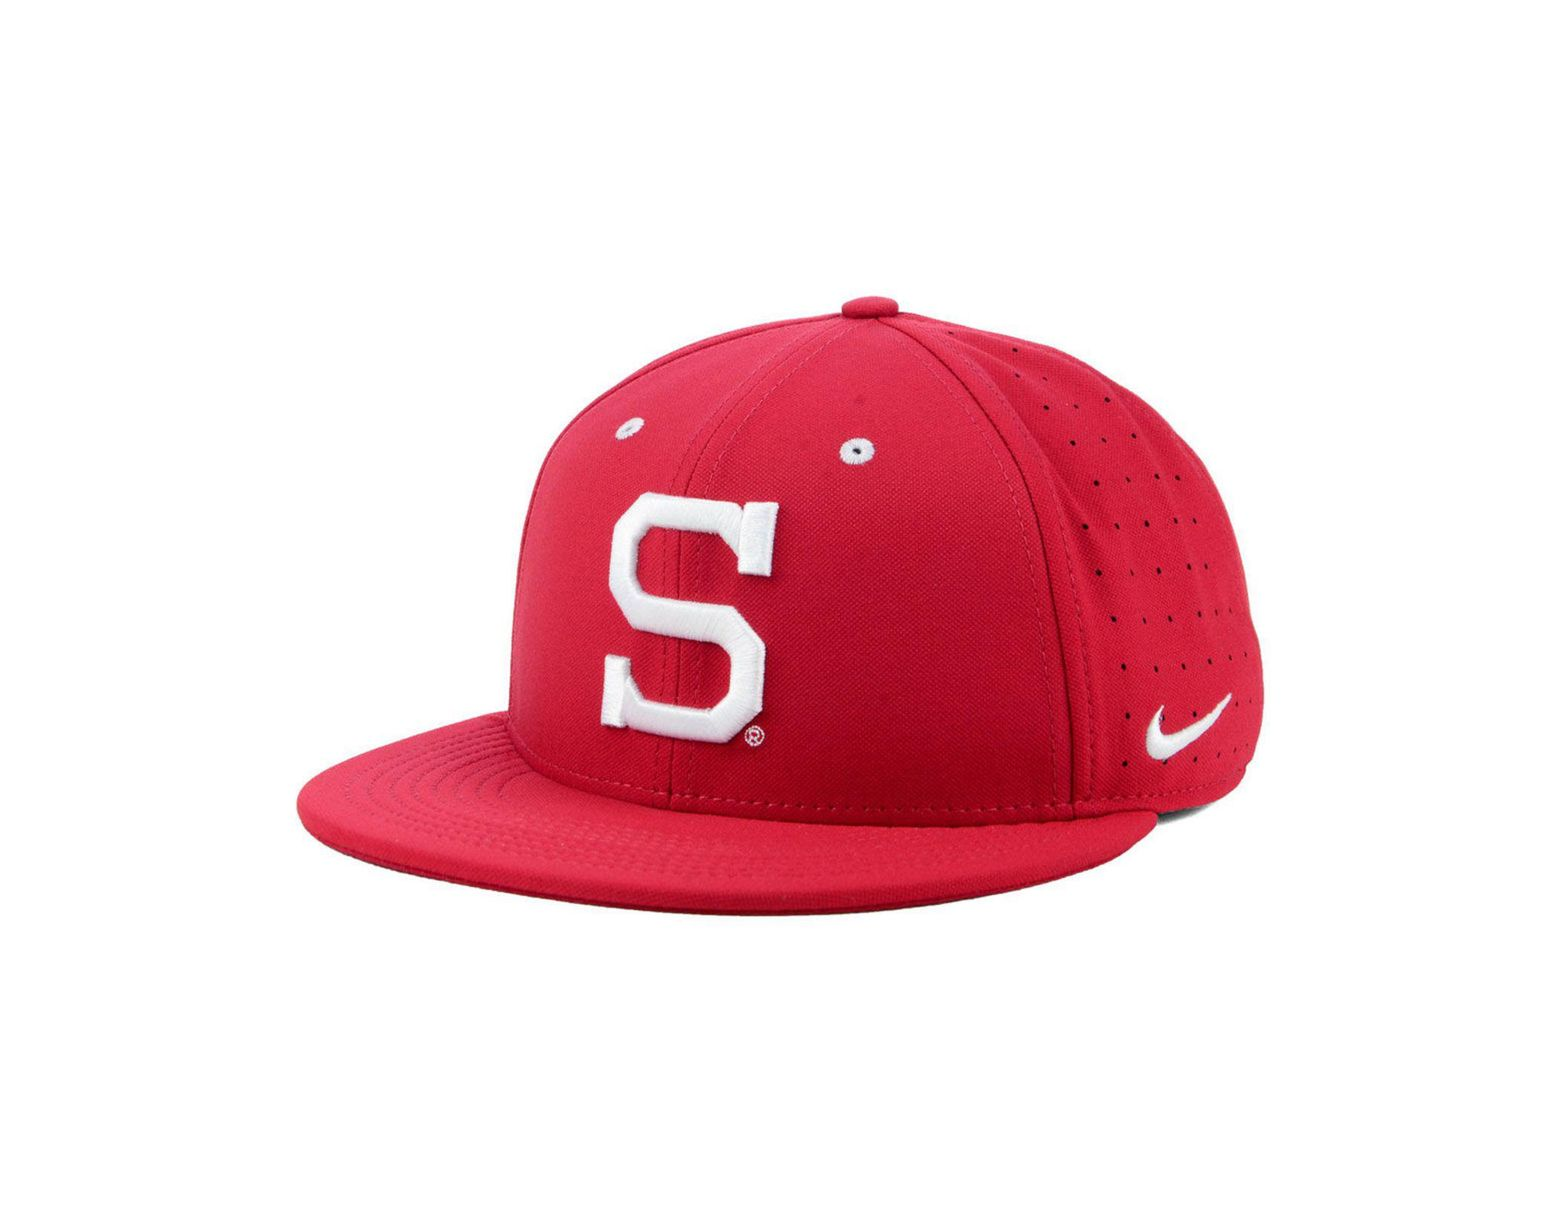 71dcfd42ad0aed Nike Stanford Cardinal Aerobill True Fitted Baseball Cap in Red for Men -  Lyst